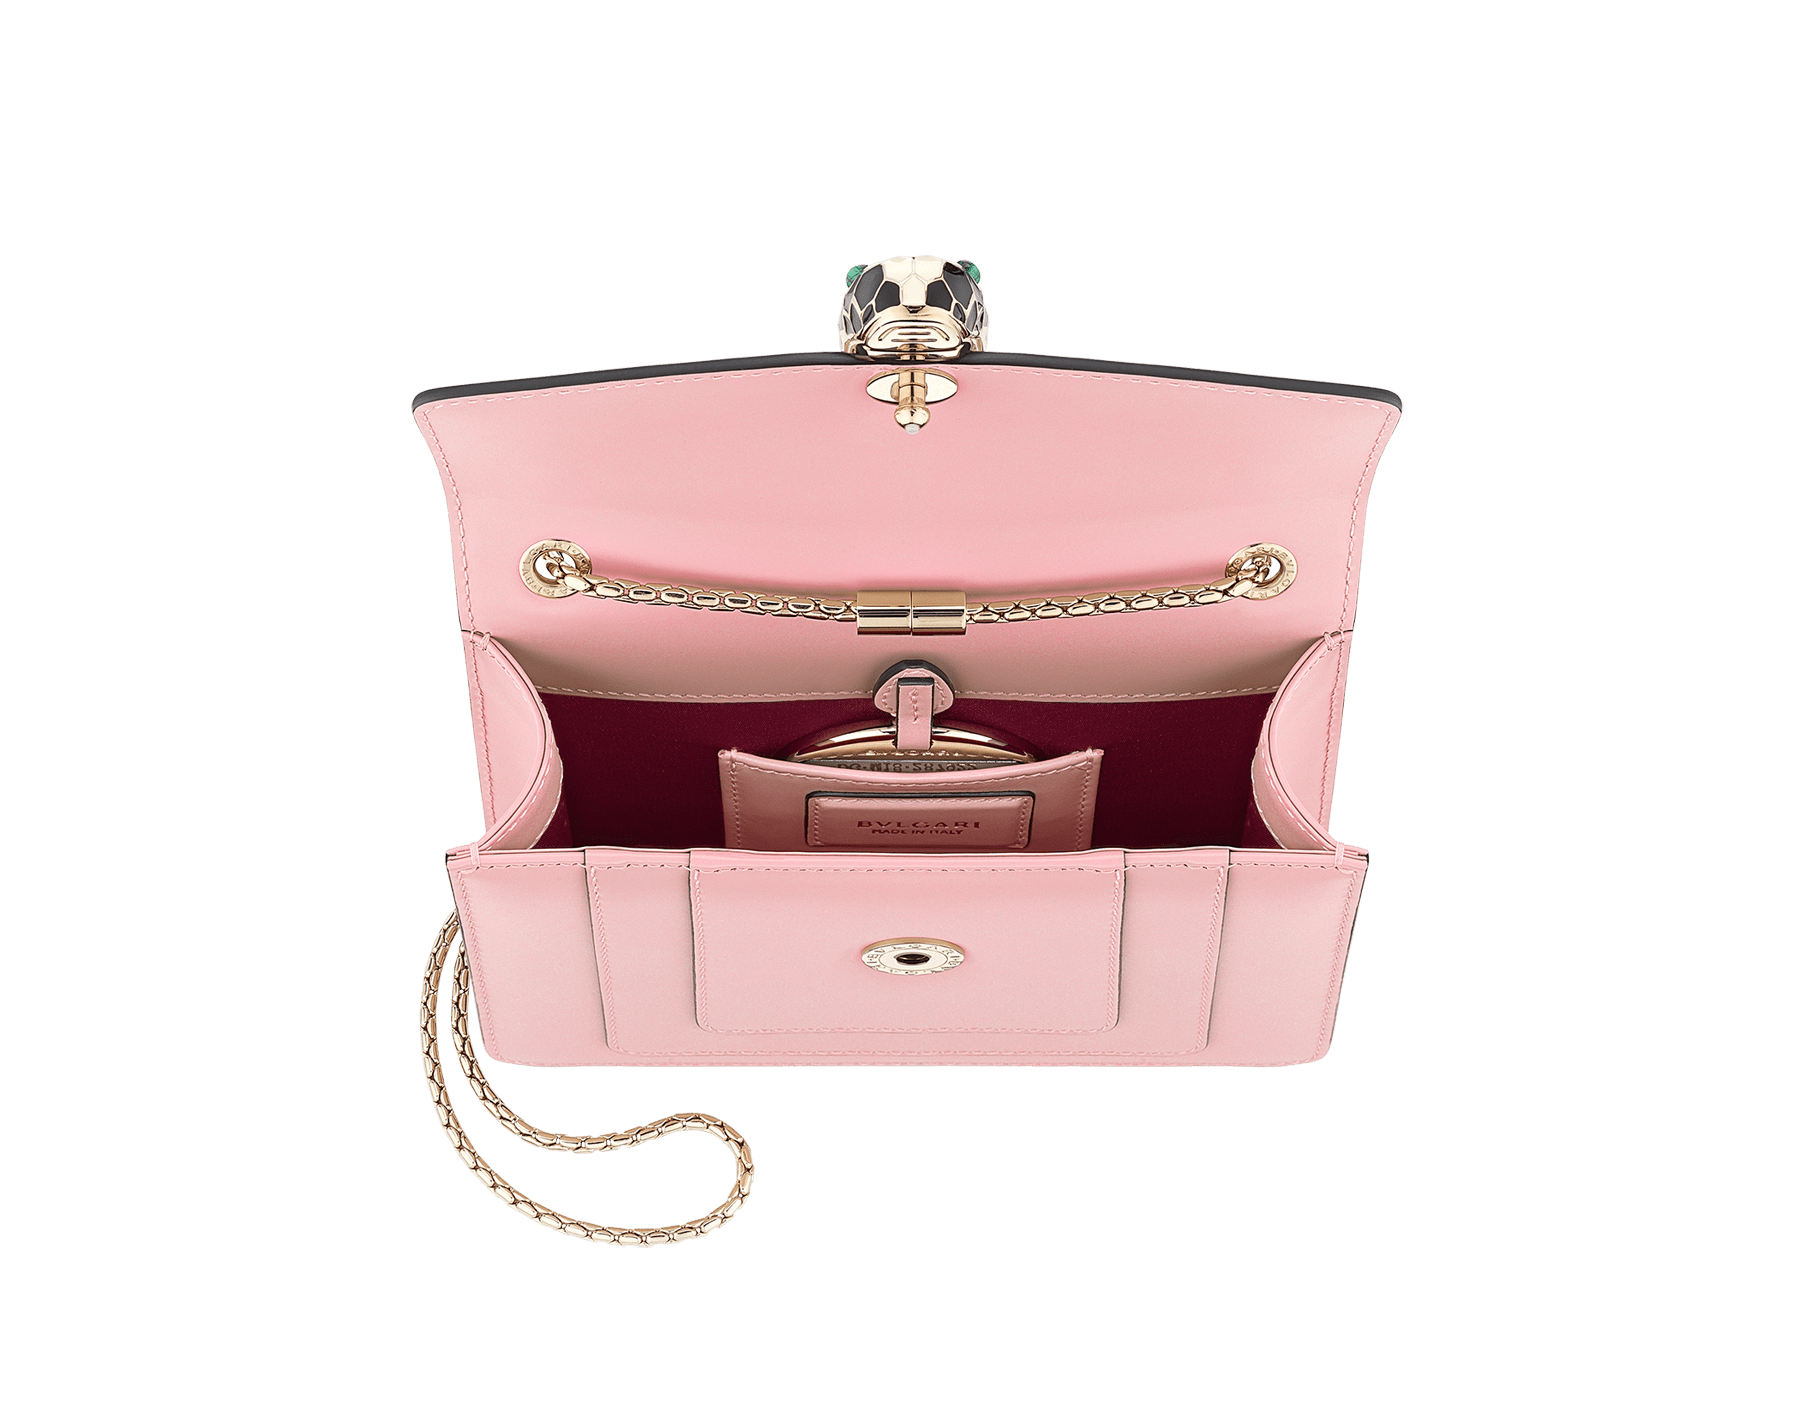 Serpenti Forever crossbody bag in sea star coral smooth calf leather. Snakehead closure in light gold plated brass decorated with black and white enamel, and green malachite eyes. 422-CLb image 4